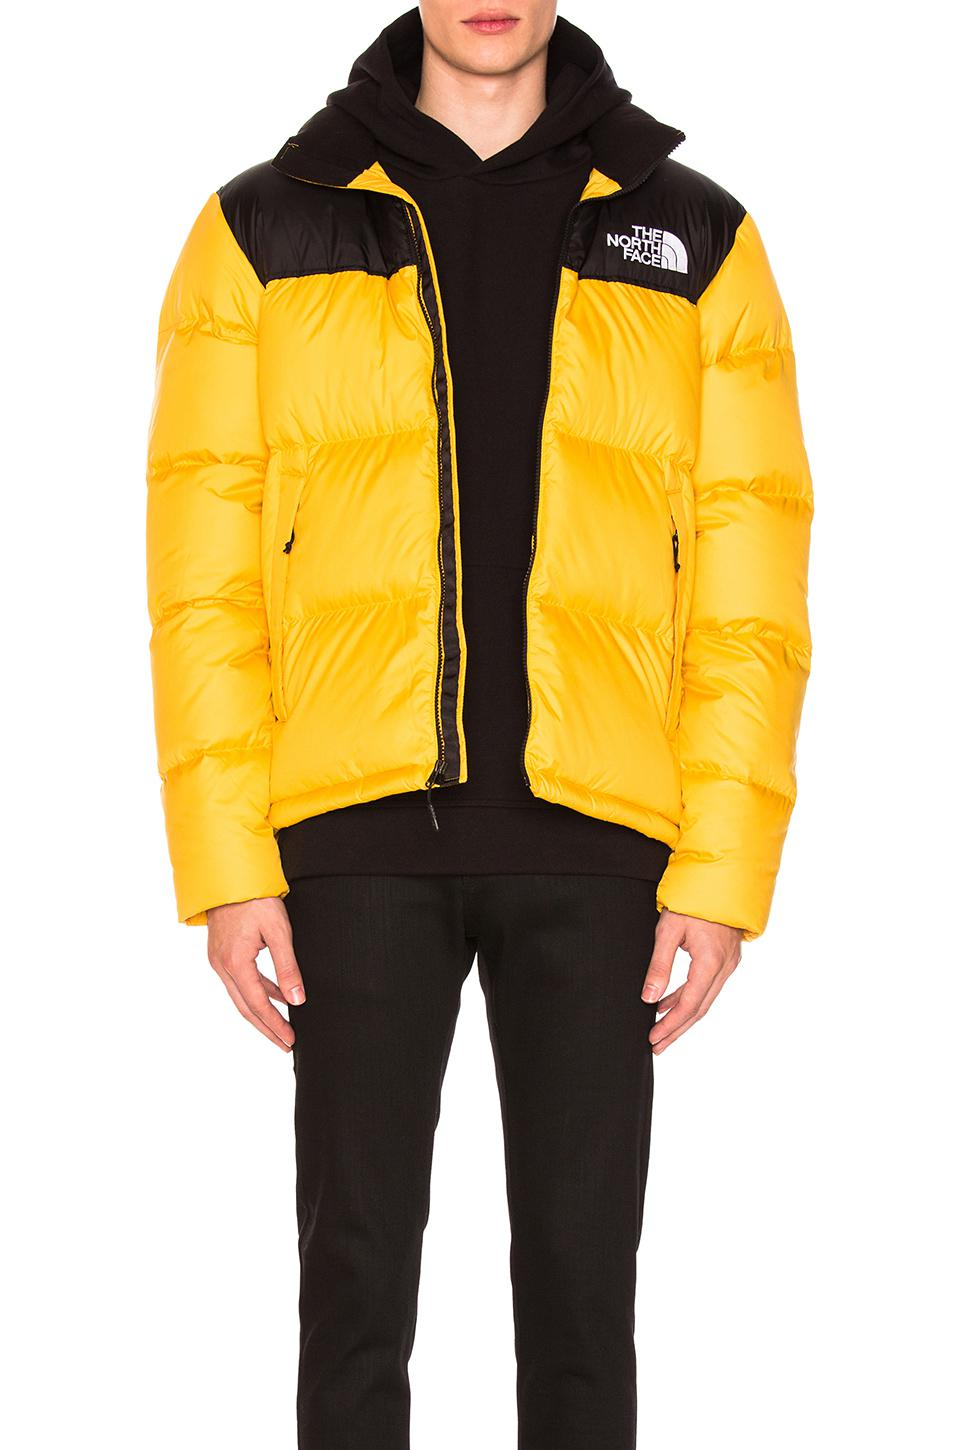 3544a41e5 uk north face puffer jacket all black yellow 52d60 09411